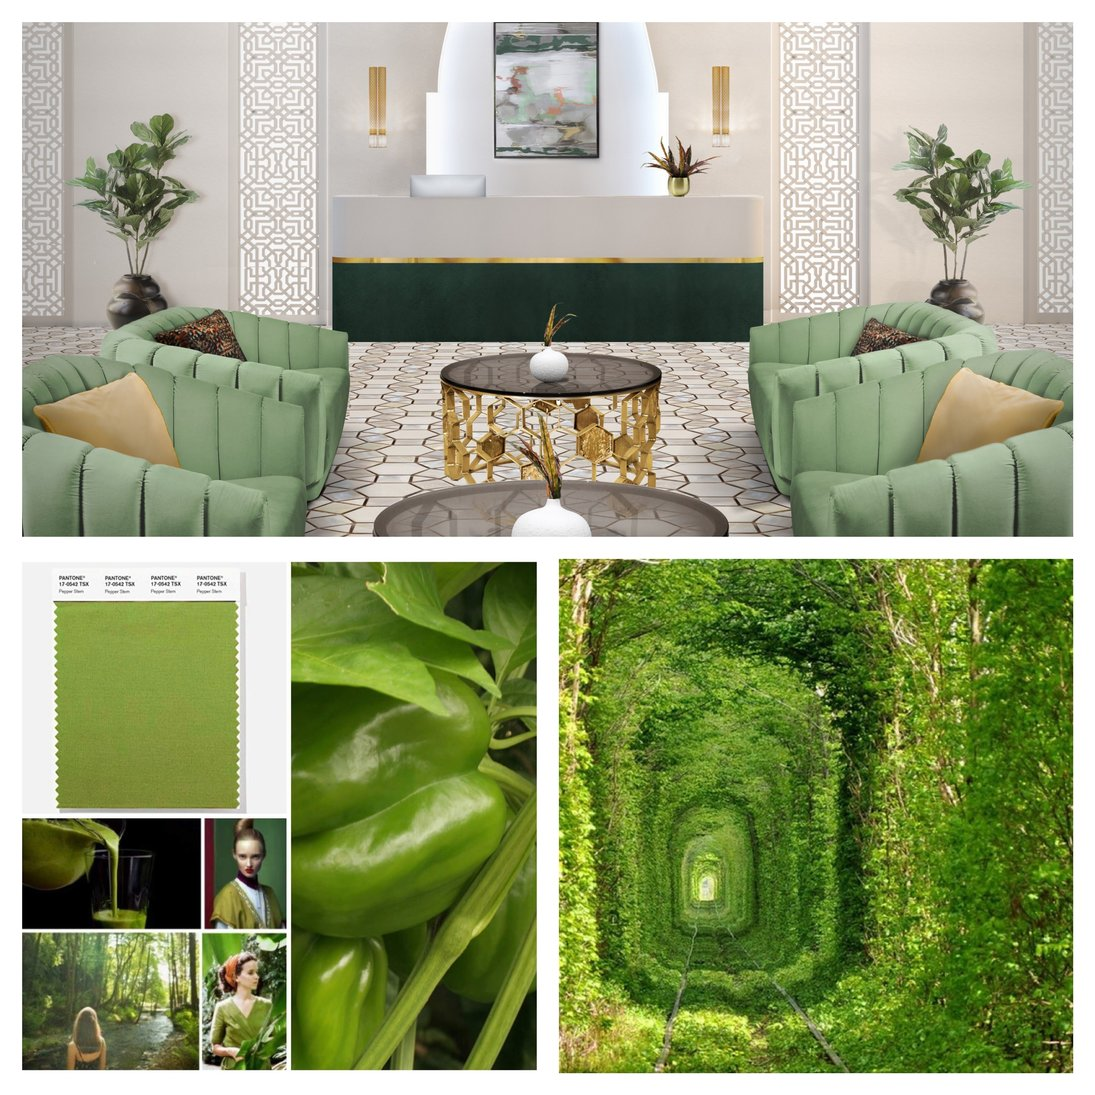 Meet the color palette for 2019 according to Pantone color paletteMeet the color palette for 2019 according to Pantonersz img 0601